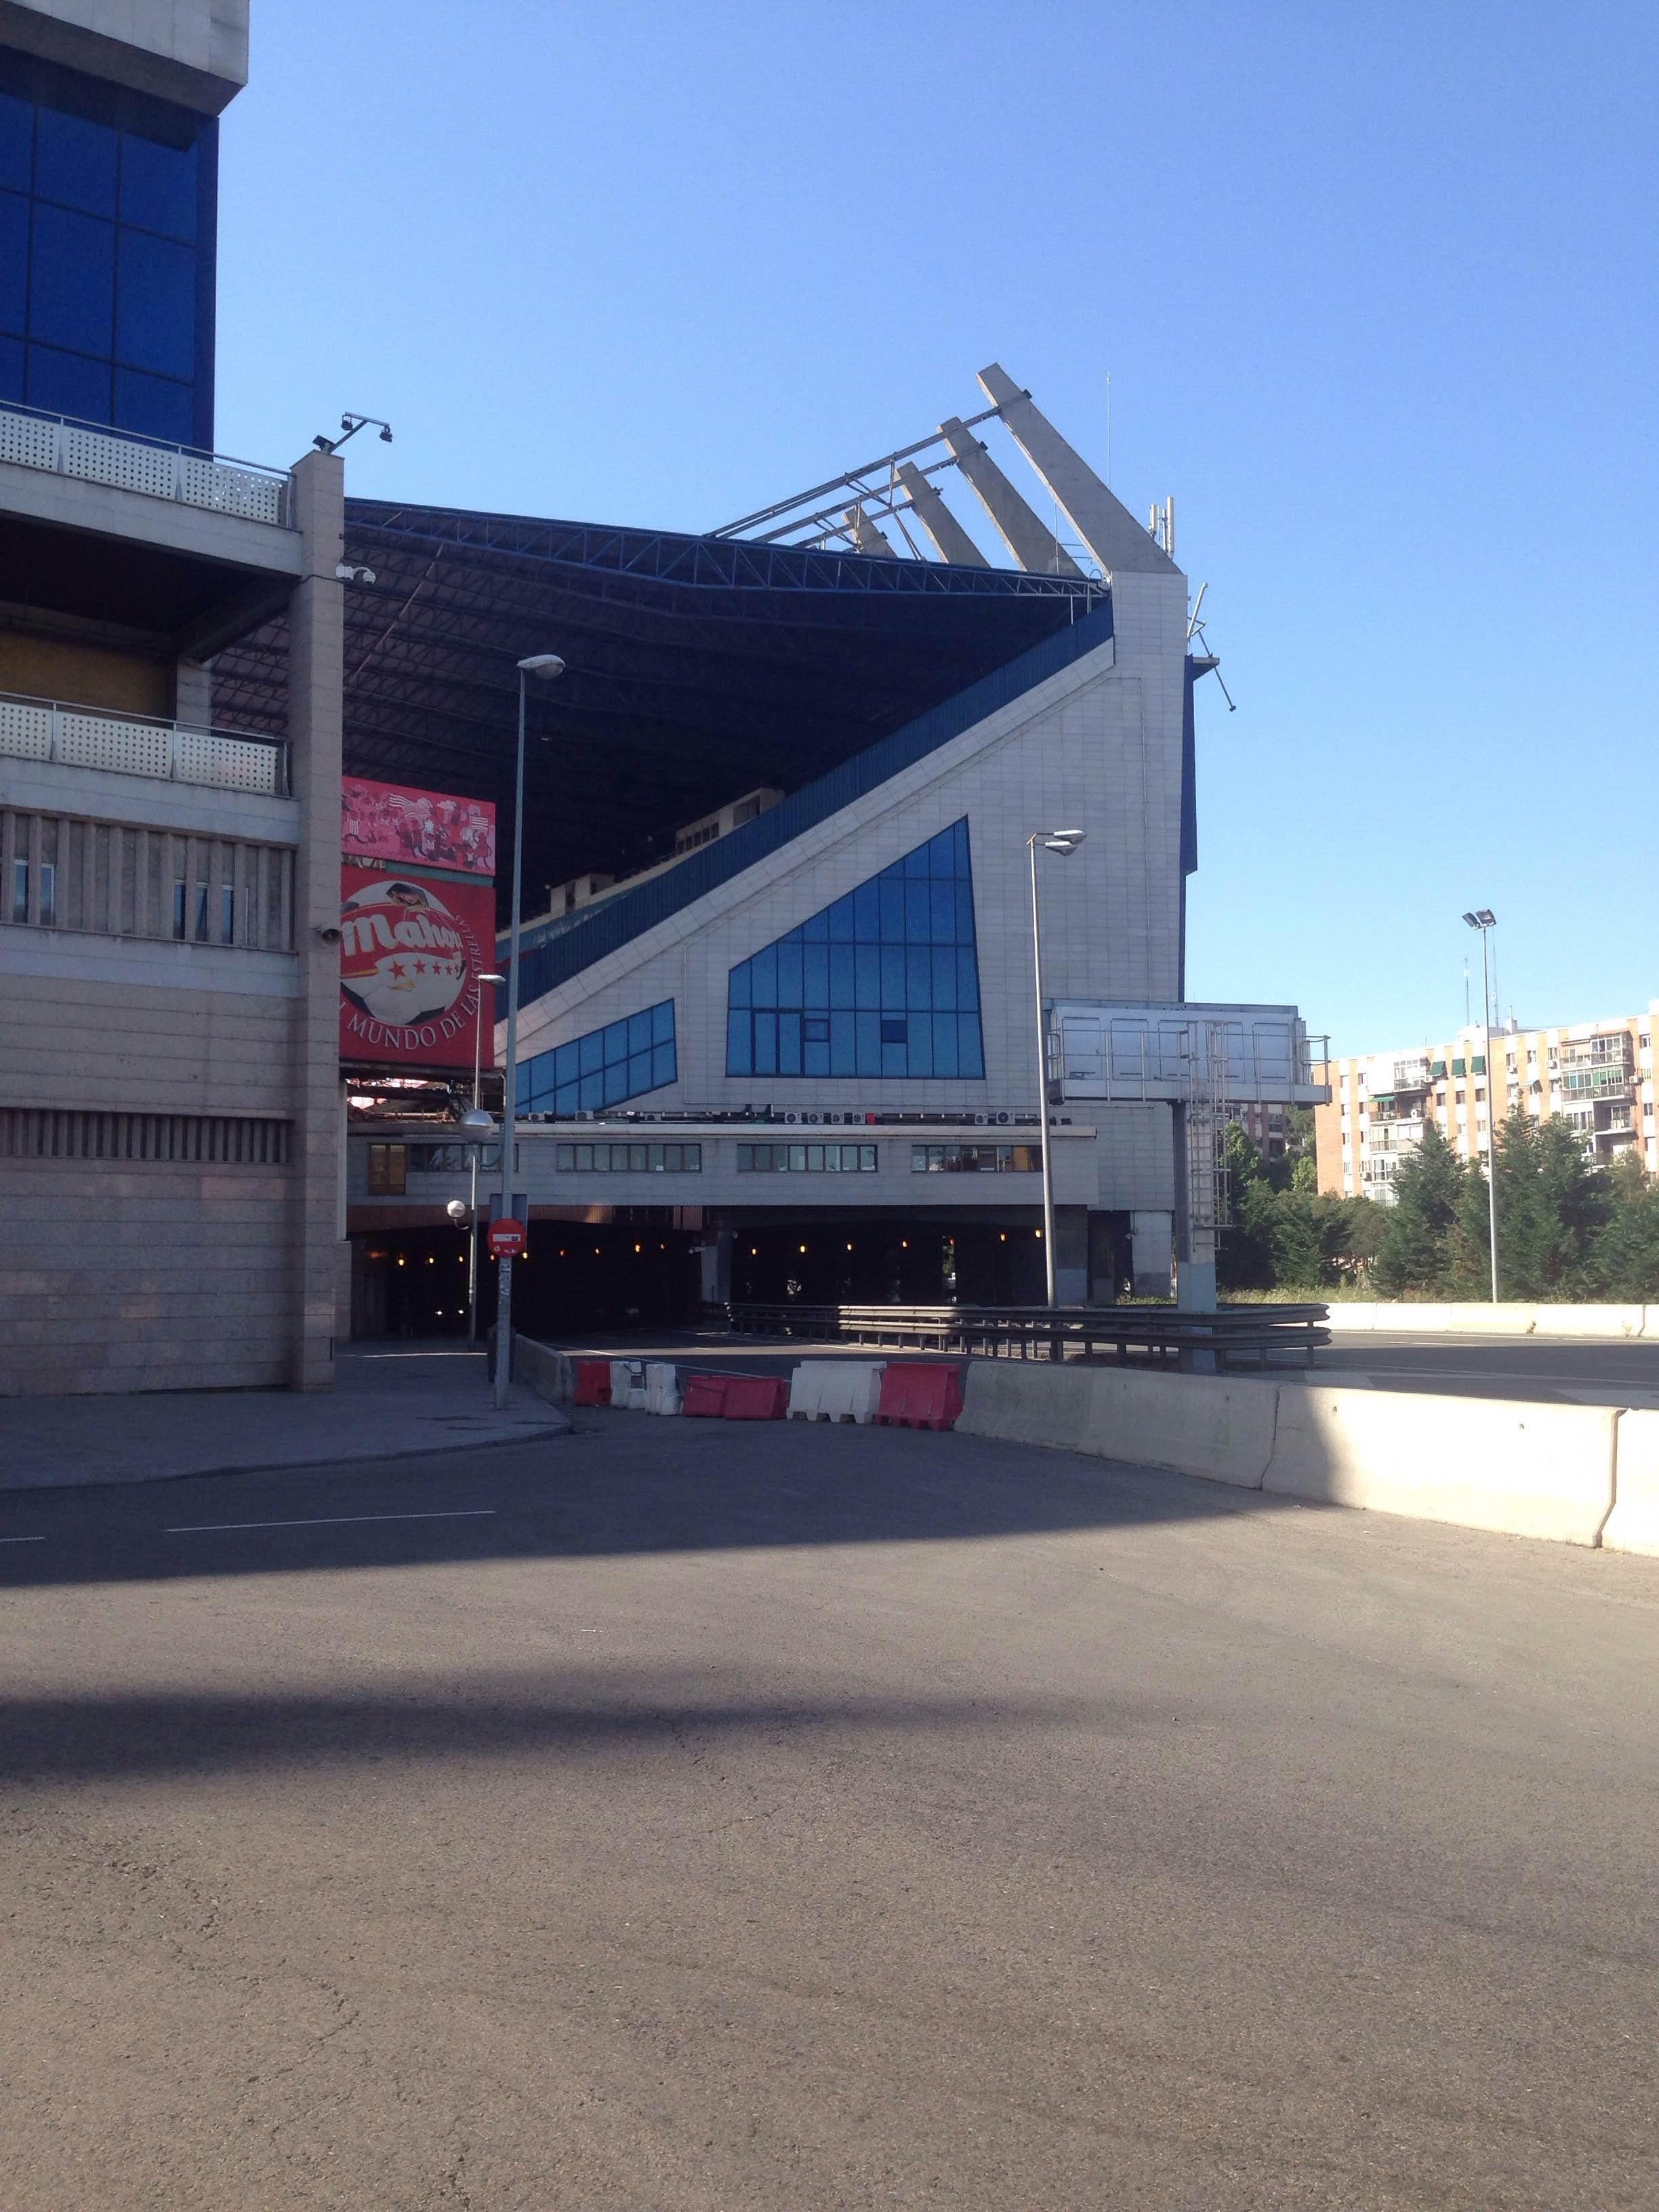 Transporte en Estadio Vicente Calderón